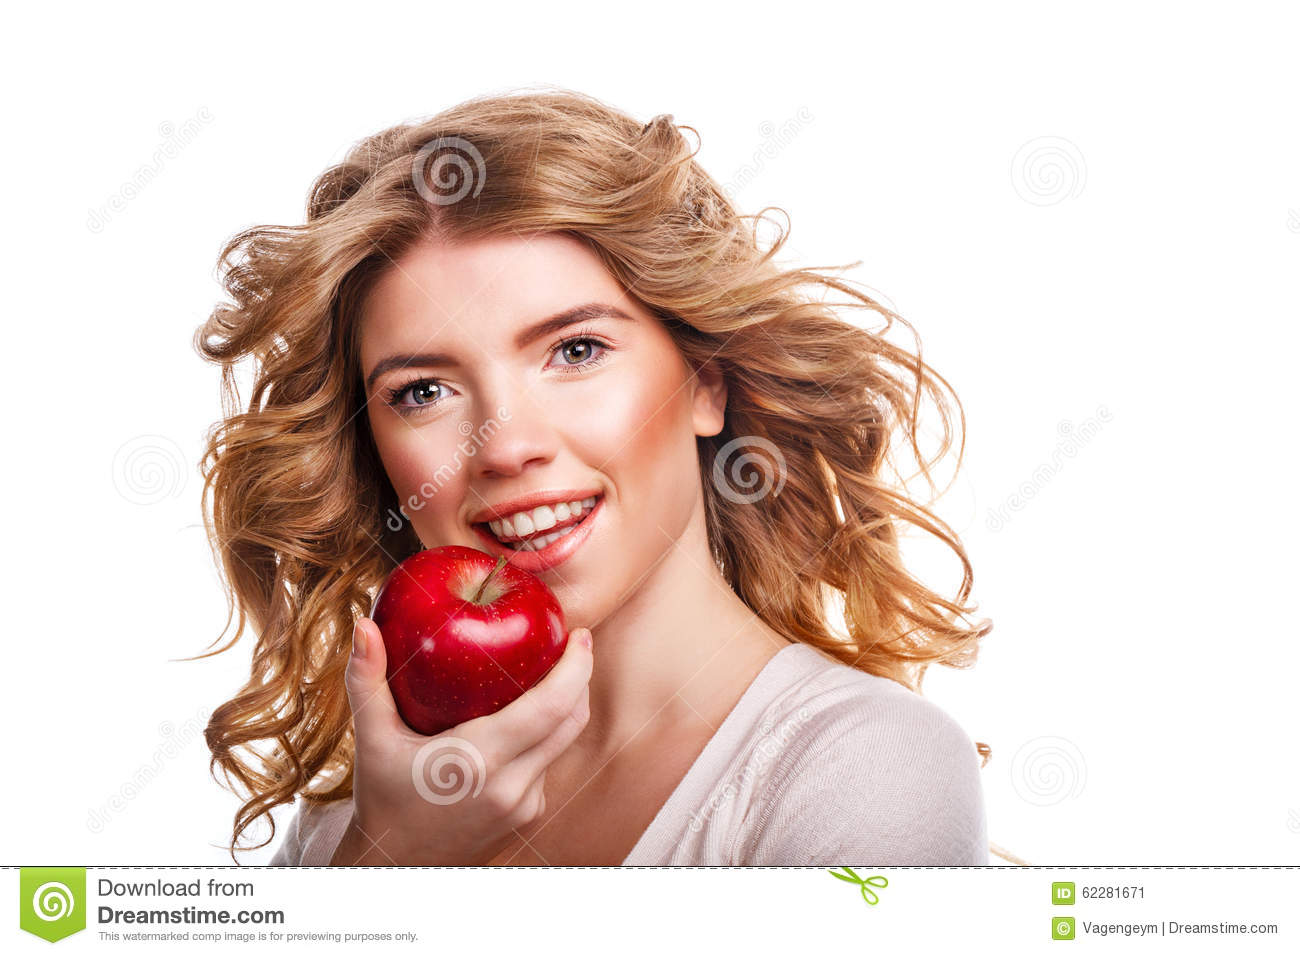 Girl With Curly Hair Holding A Red Apple And Smiling. Stock Image - Image of beautiful ...